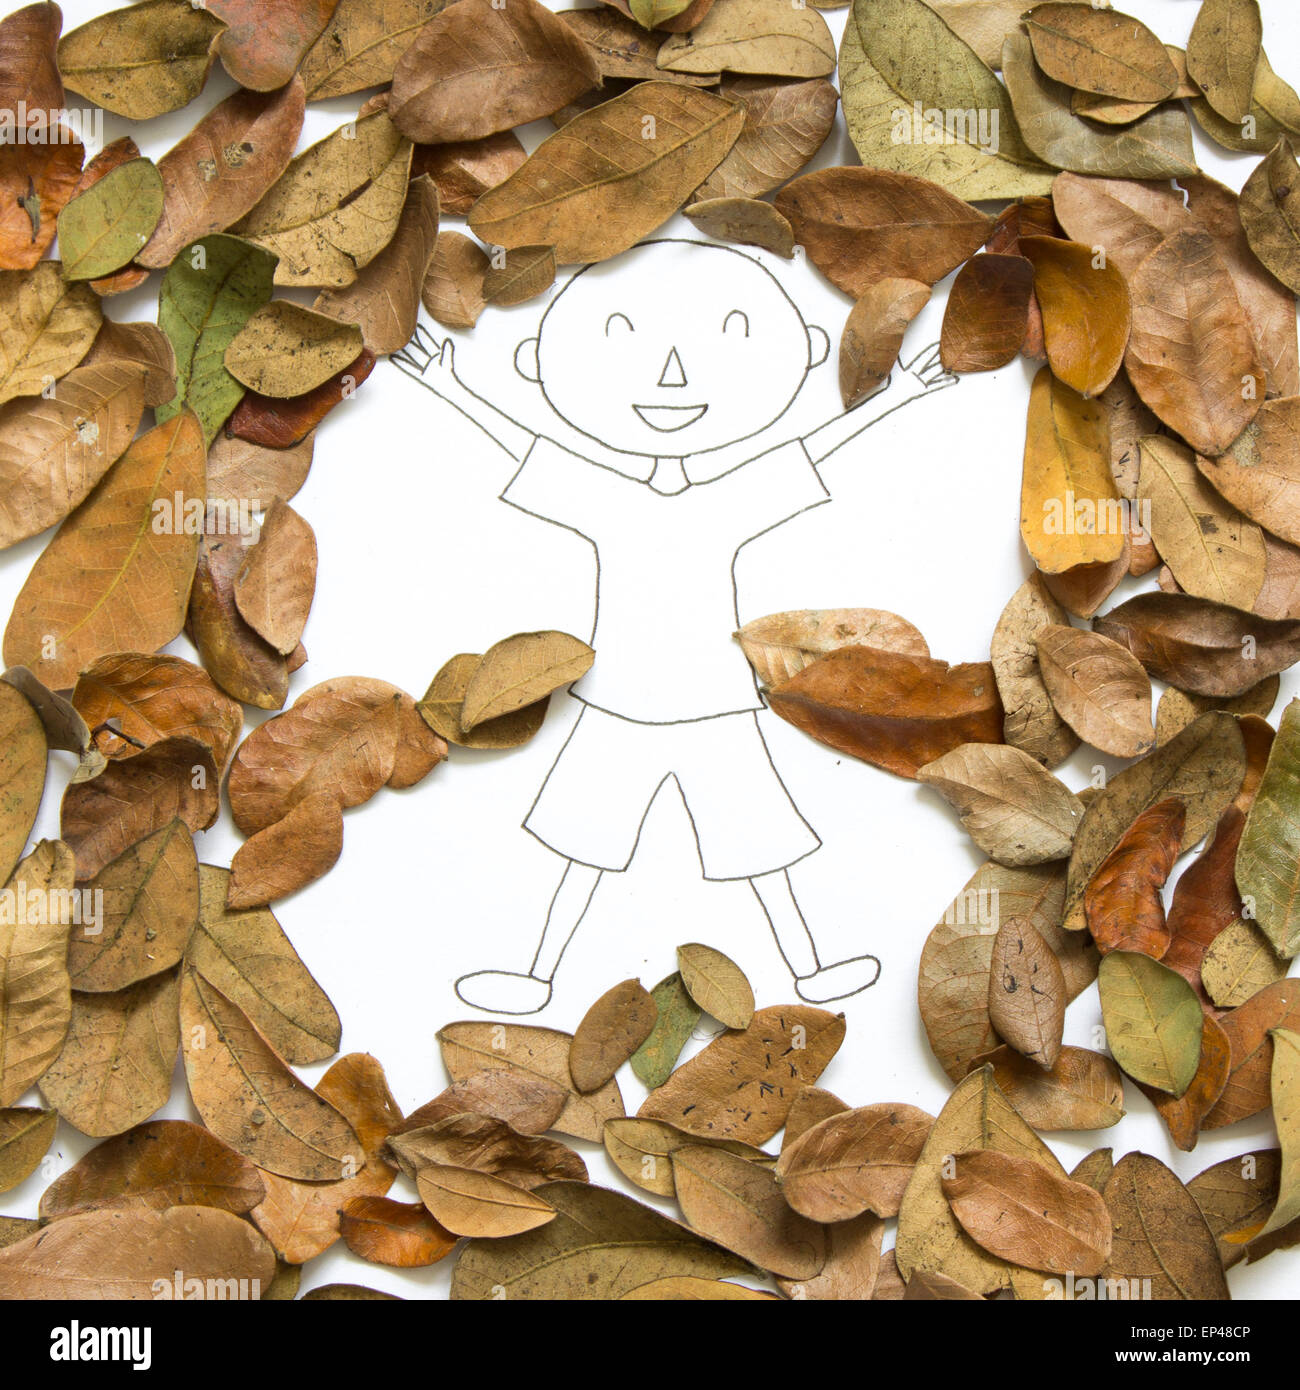 Drawing of a boy surrounded by leaves - Stock Image